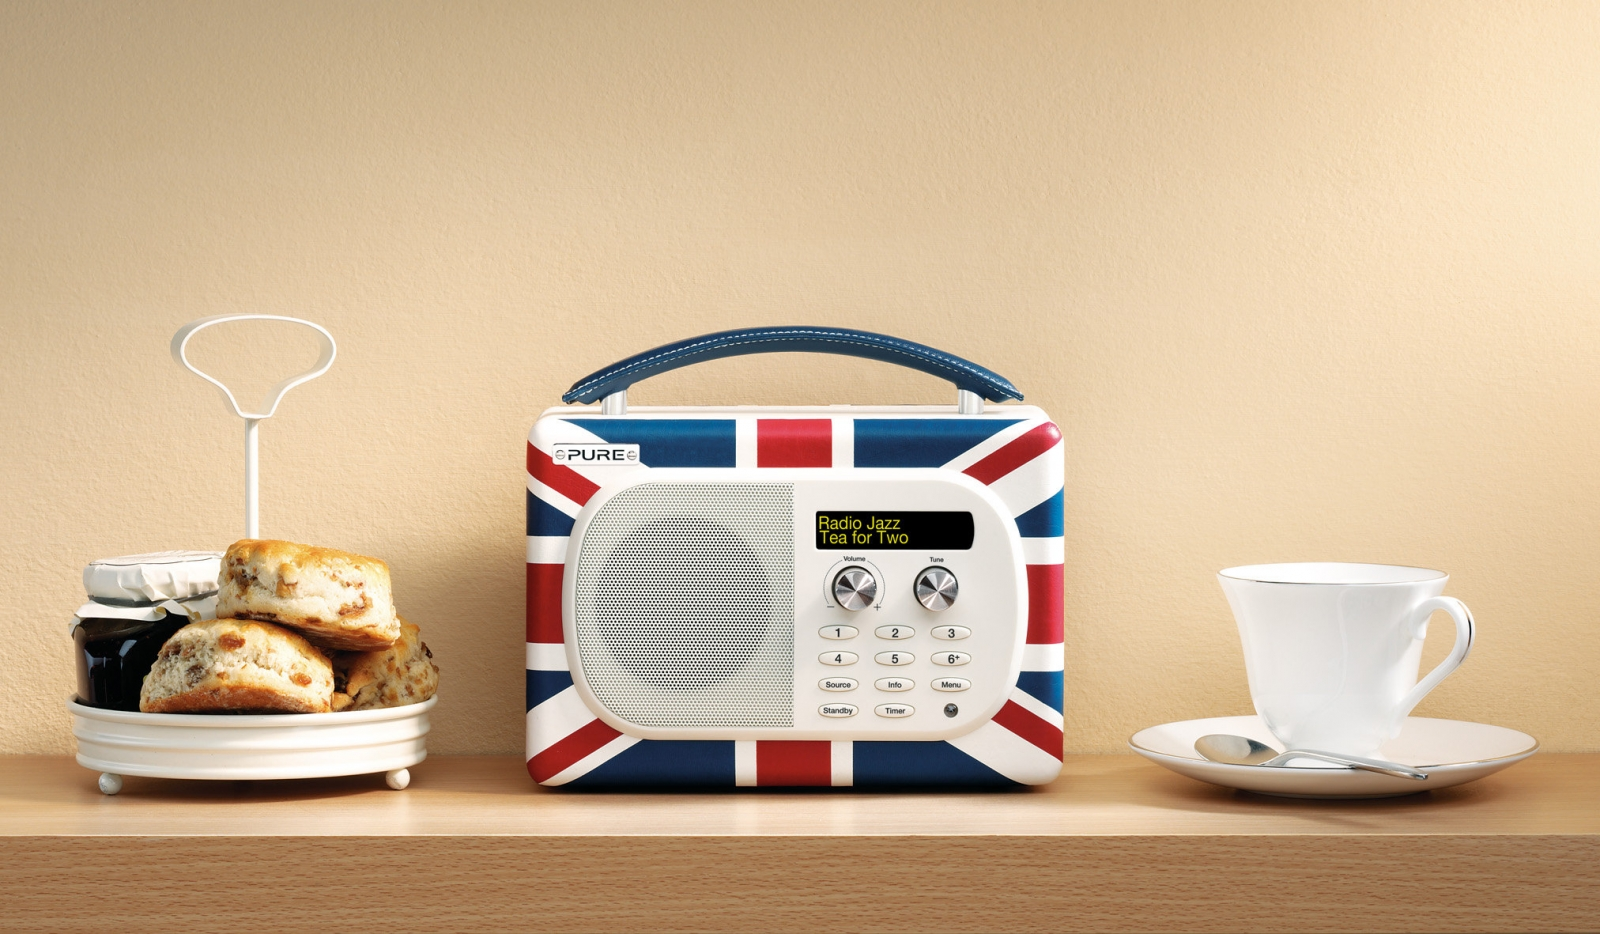 Pure Evoke Mio Portable DAB Digital/FM Radio